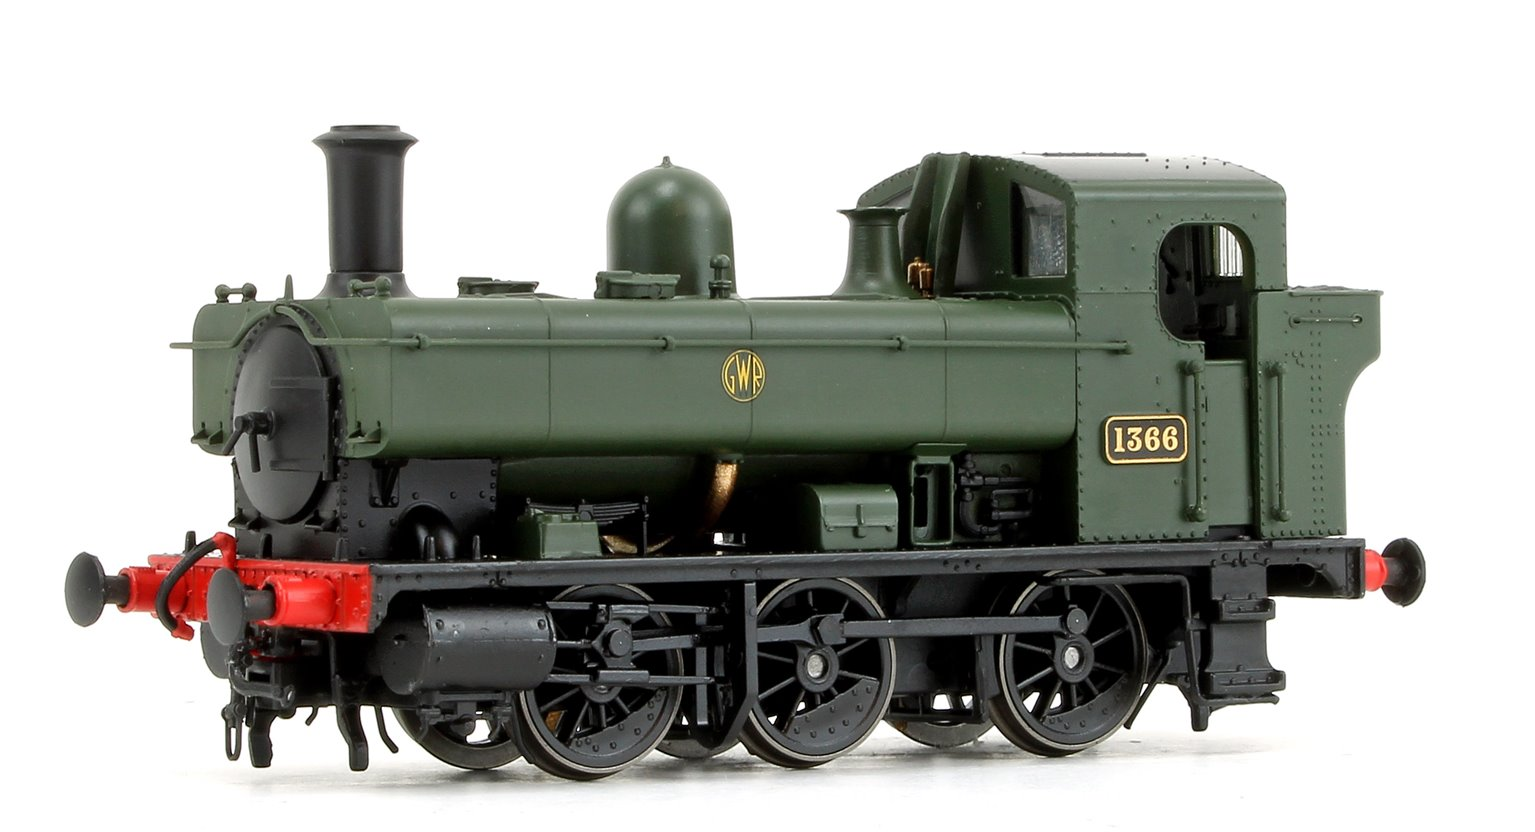 GWR 1366 Class 0-6-0 Tank Locomotive No.1366 in GWR green with shirtbutton